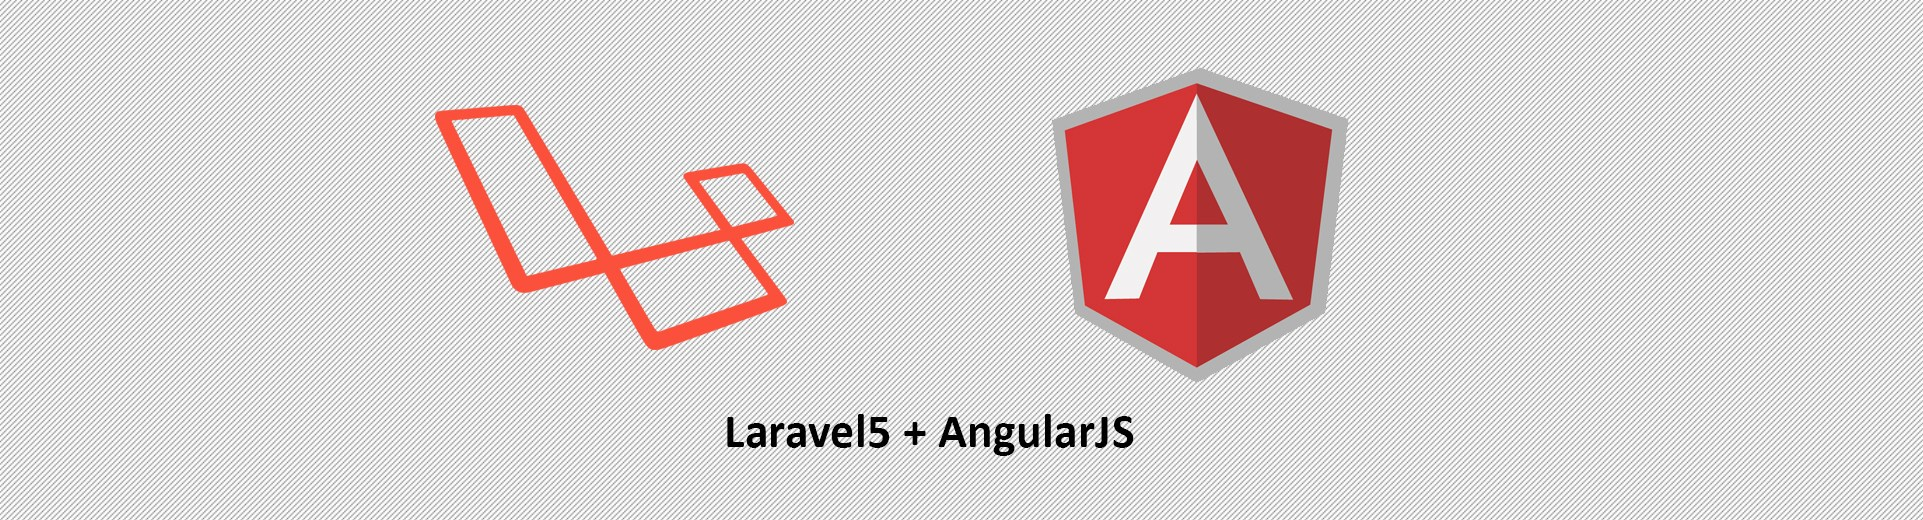 Build an app with Laravel5 (backend) and Angularjs (frontend) – Part 2